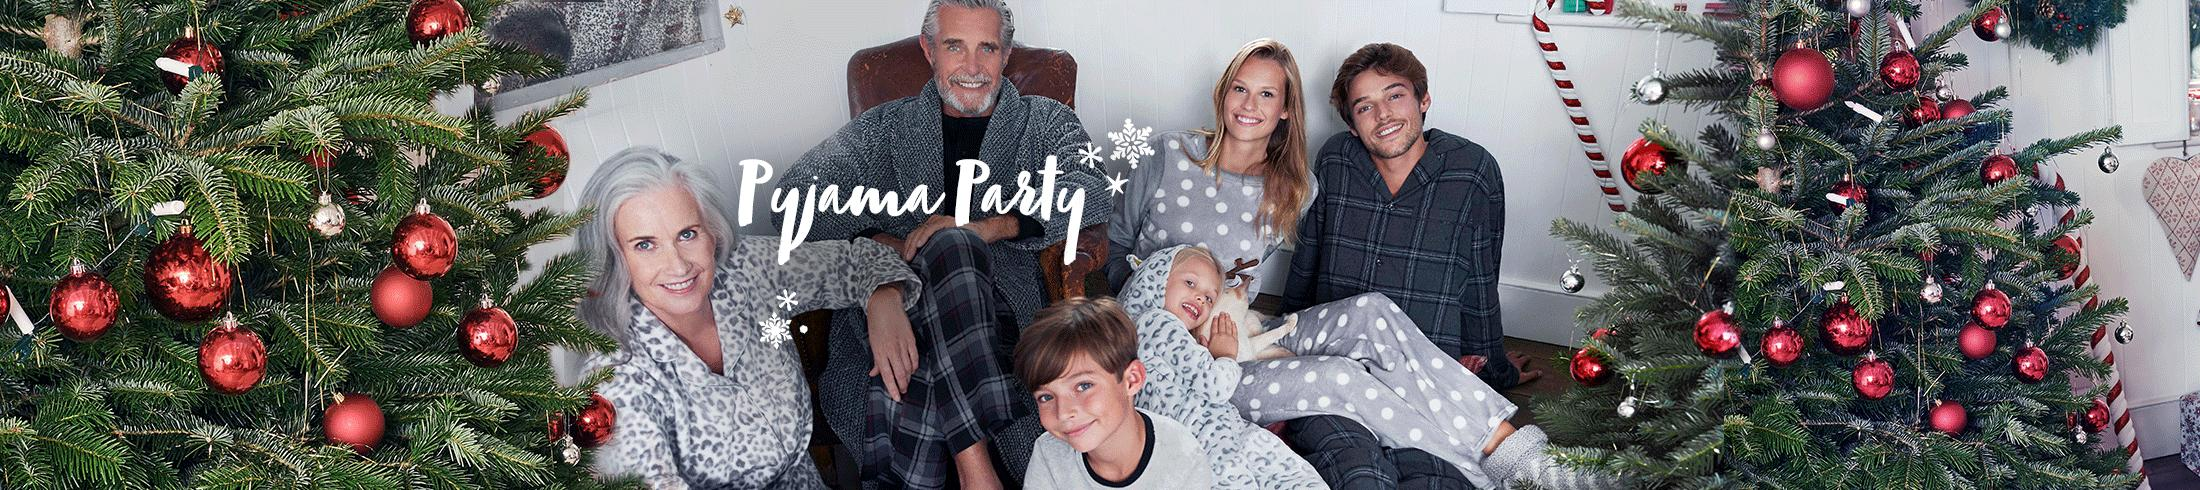 Kit the family out with soft and snug nightwear at George.com